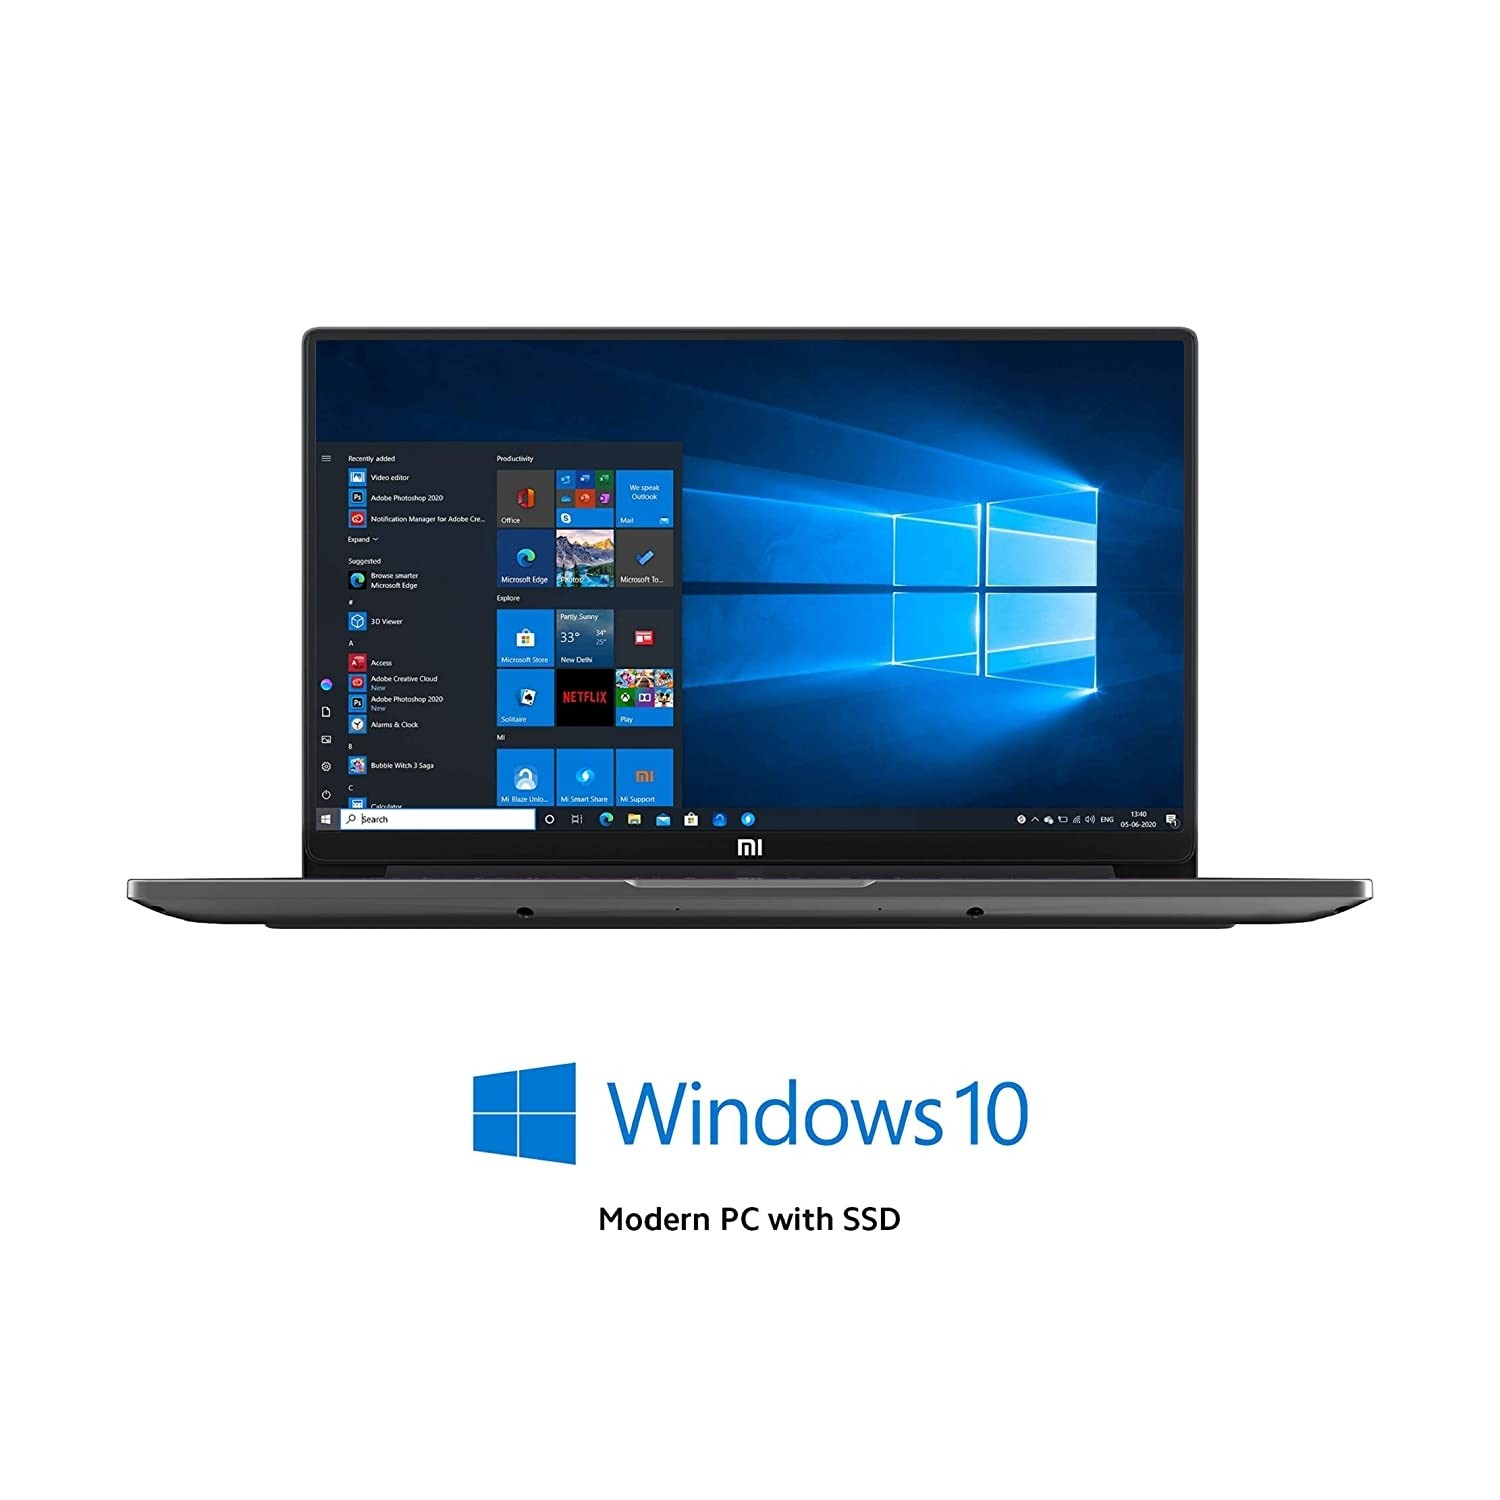 Refurbished laptops & desktops - Mi Notebook Horizon Edition 14 Intel Core I7-10510U 10TH Gen Thin And Light Laptop(8GB/512GB SSD/Windows 10/Nvidia MX350 2GB Graphics/Grey/1.35Kg), XMA1904-AF